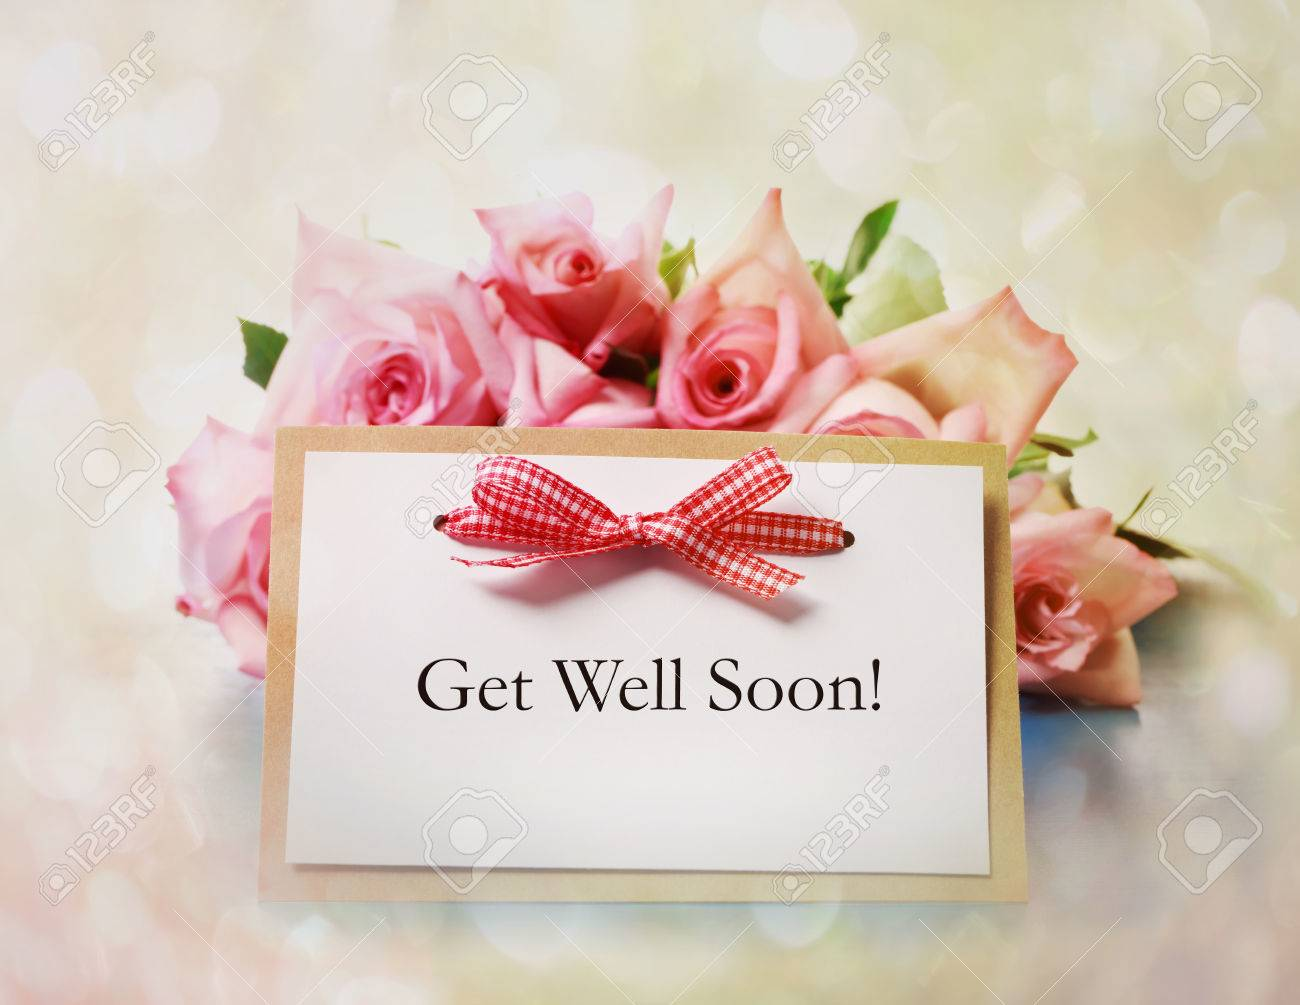 Get Well Stock Photos Royalty Free Get Well Images